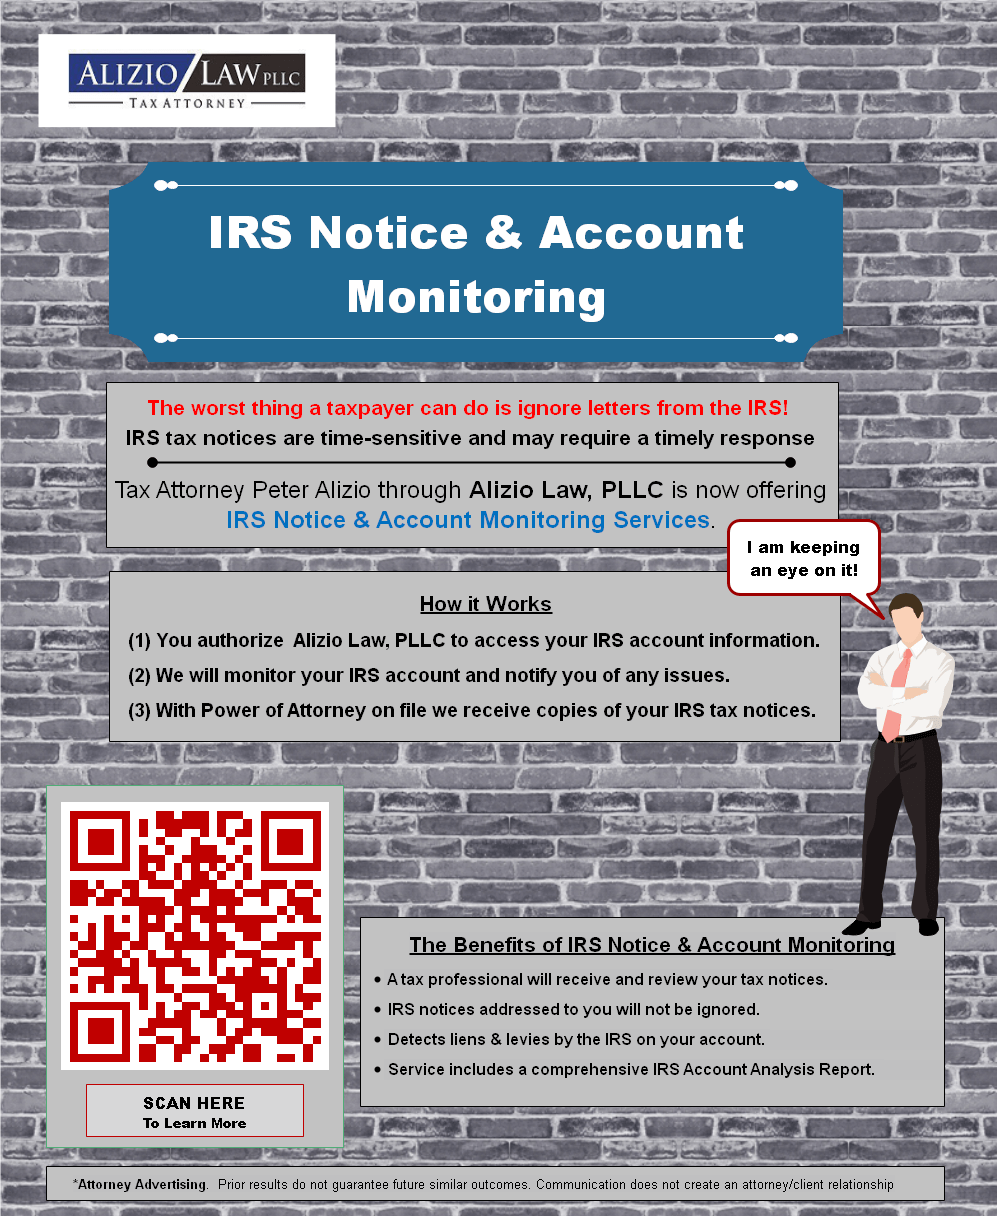 IRS Tax Notice Monitoring Monitoring